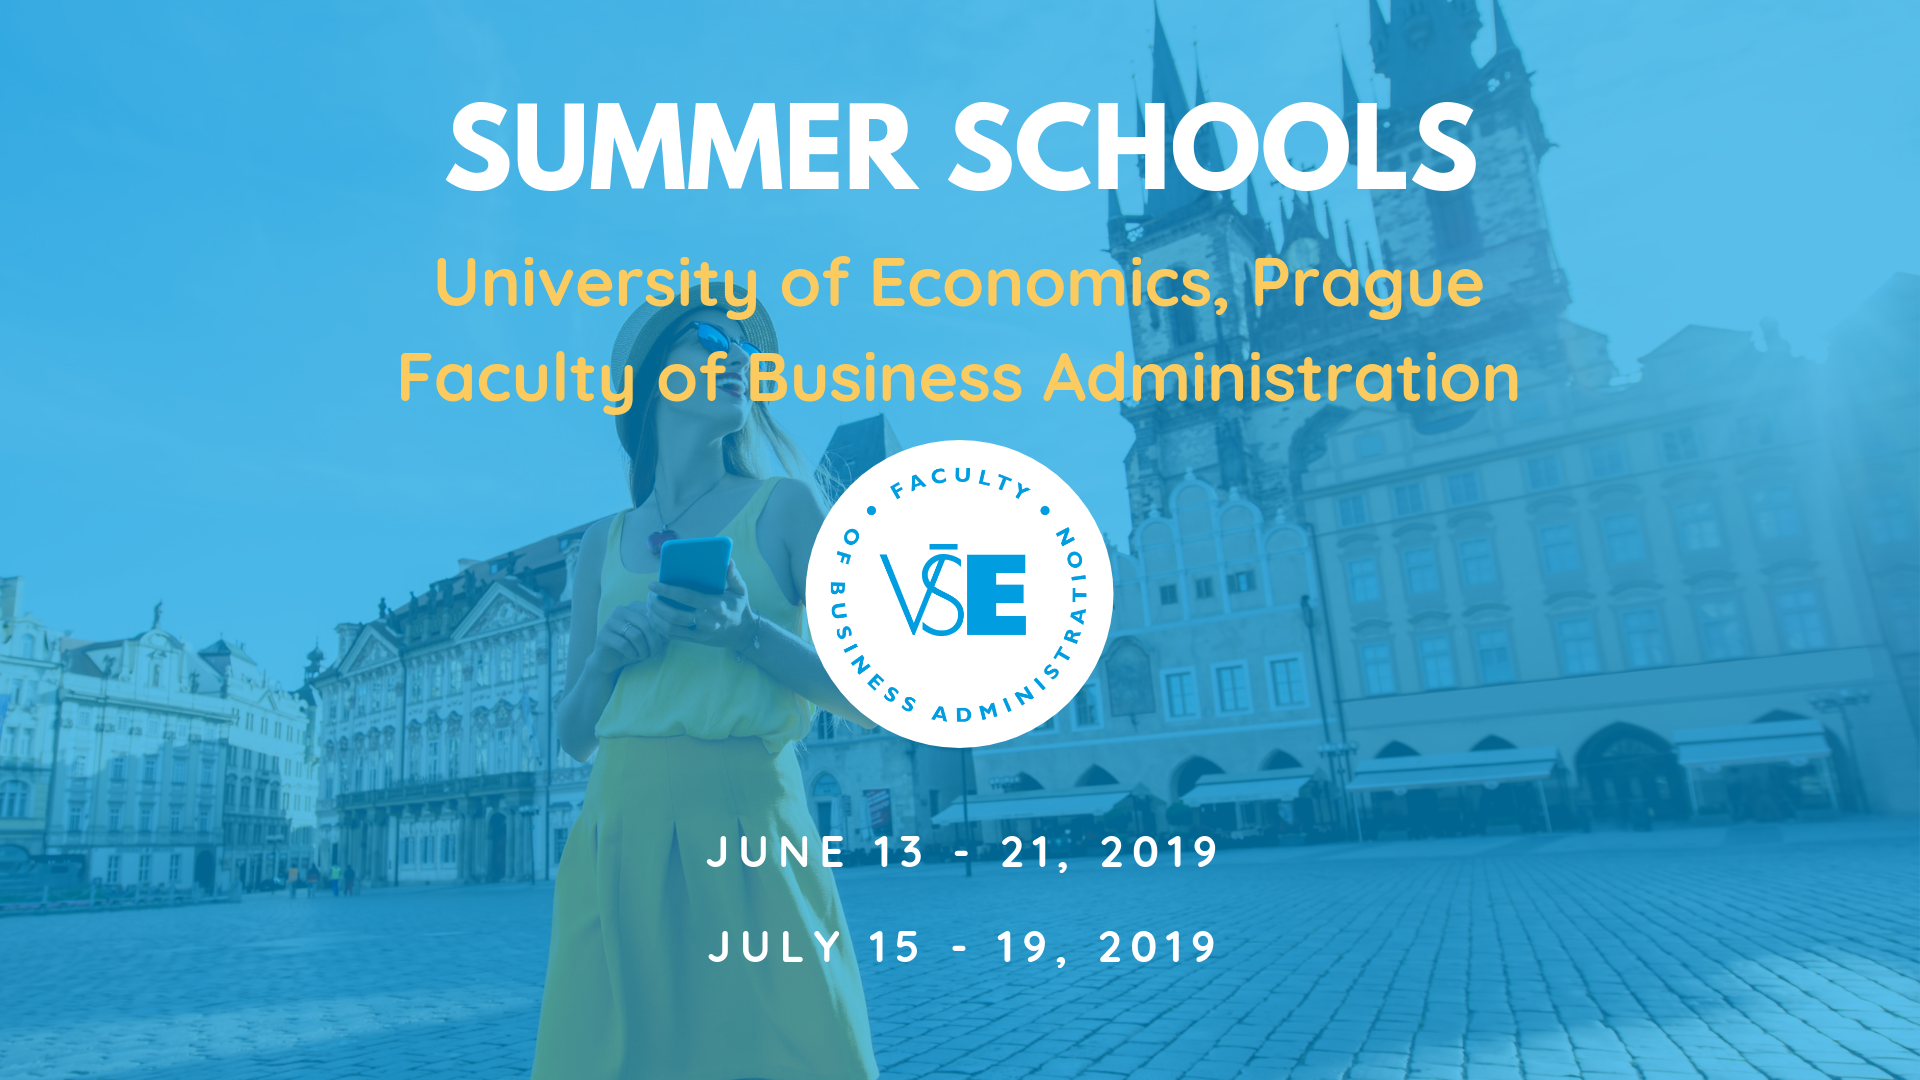 Summer Schools at the Universoty of Economics, Prague